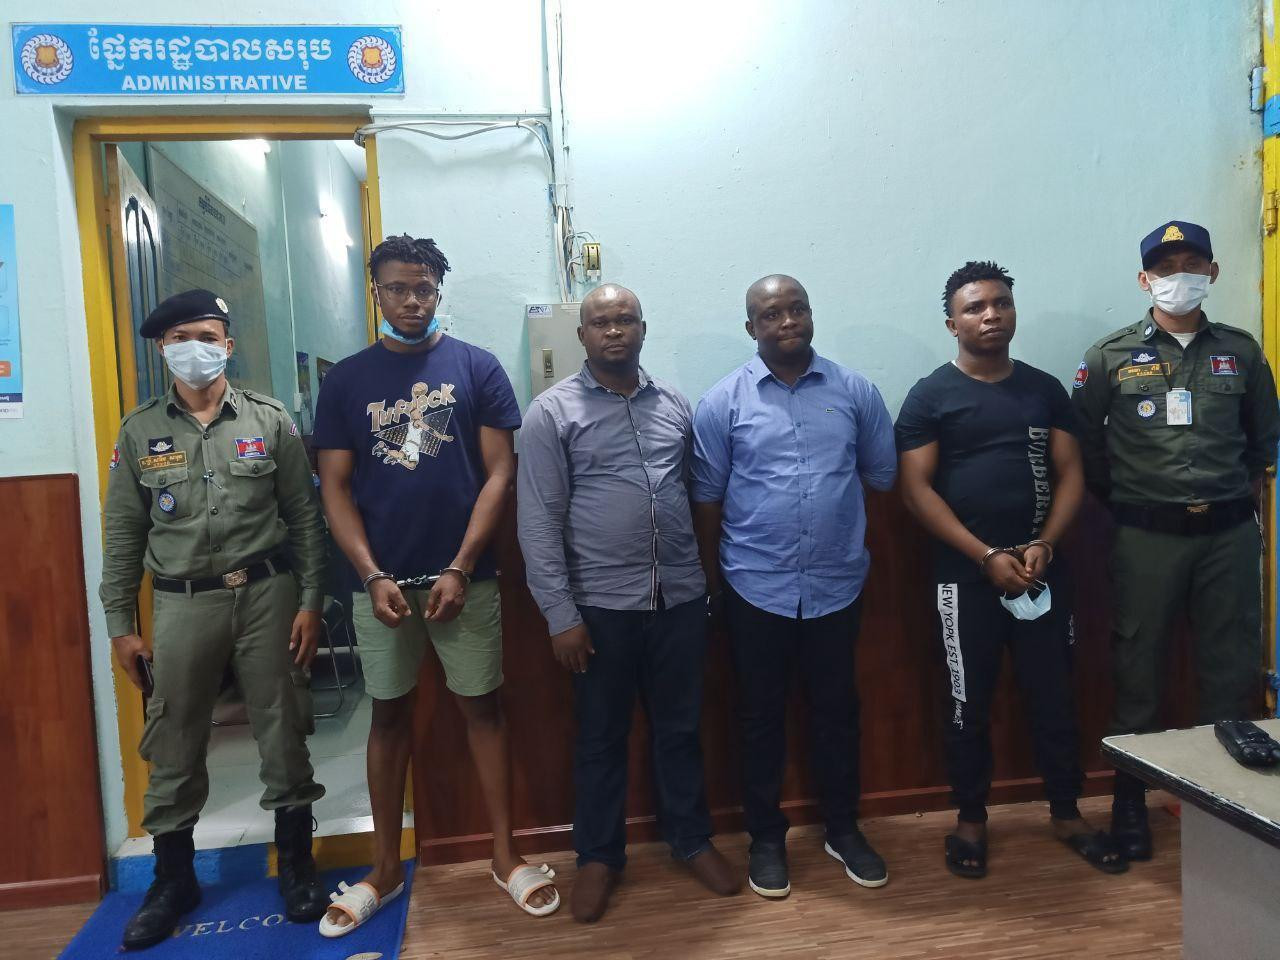 Four Nigerian Men And One Cambodian Woman Arrested Over Alleged Scam In Cambodia